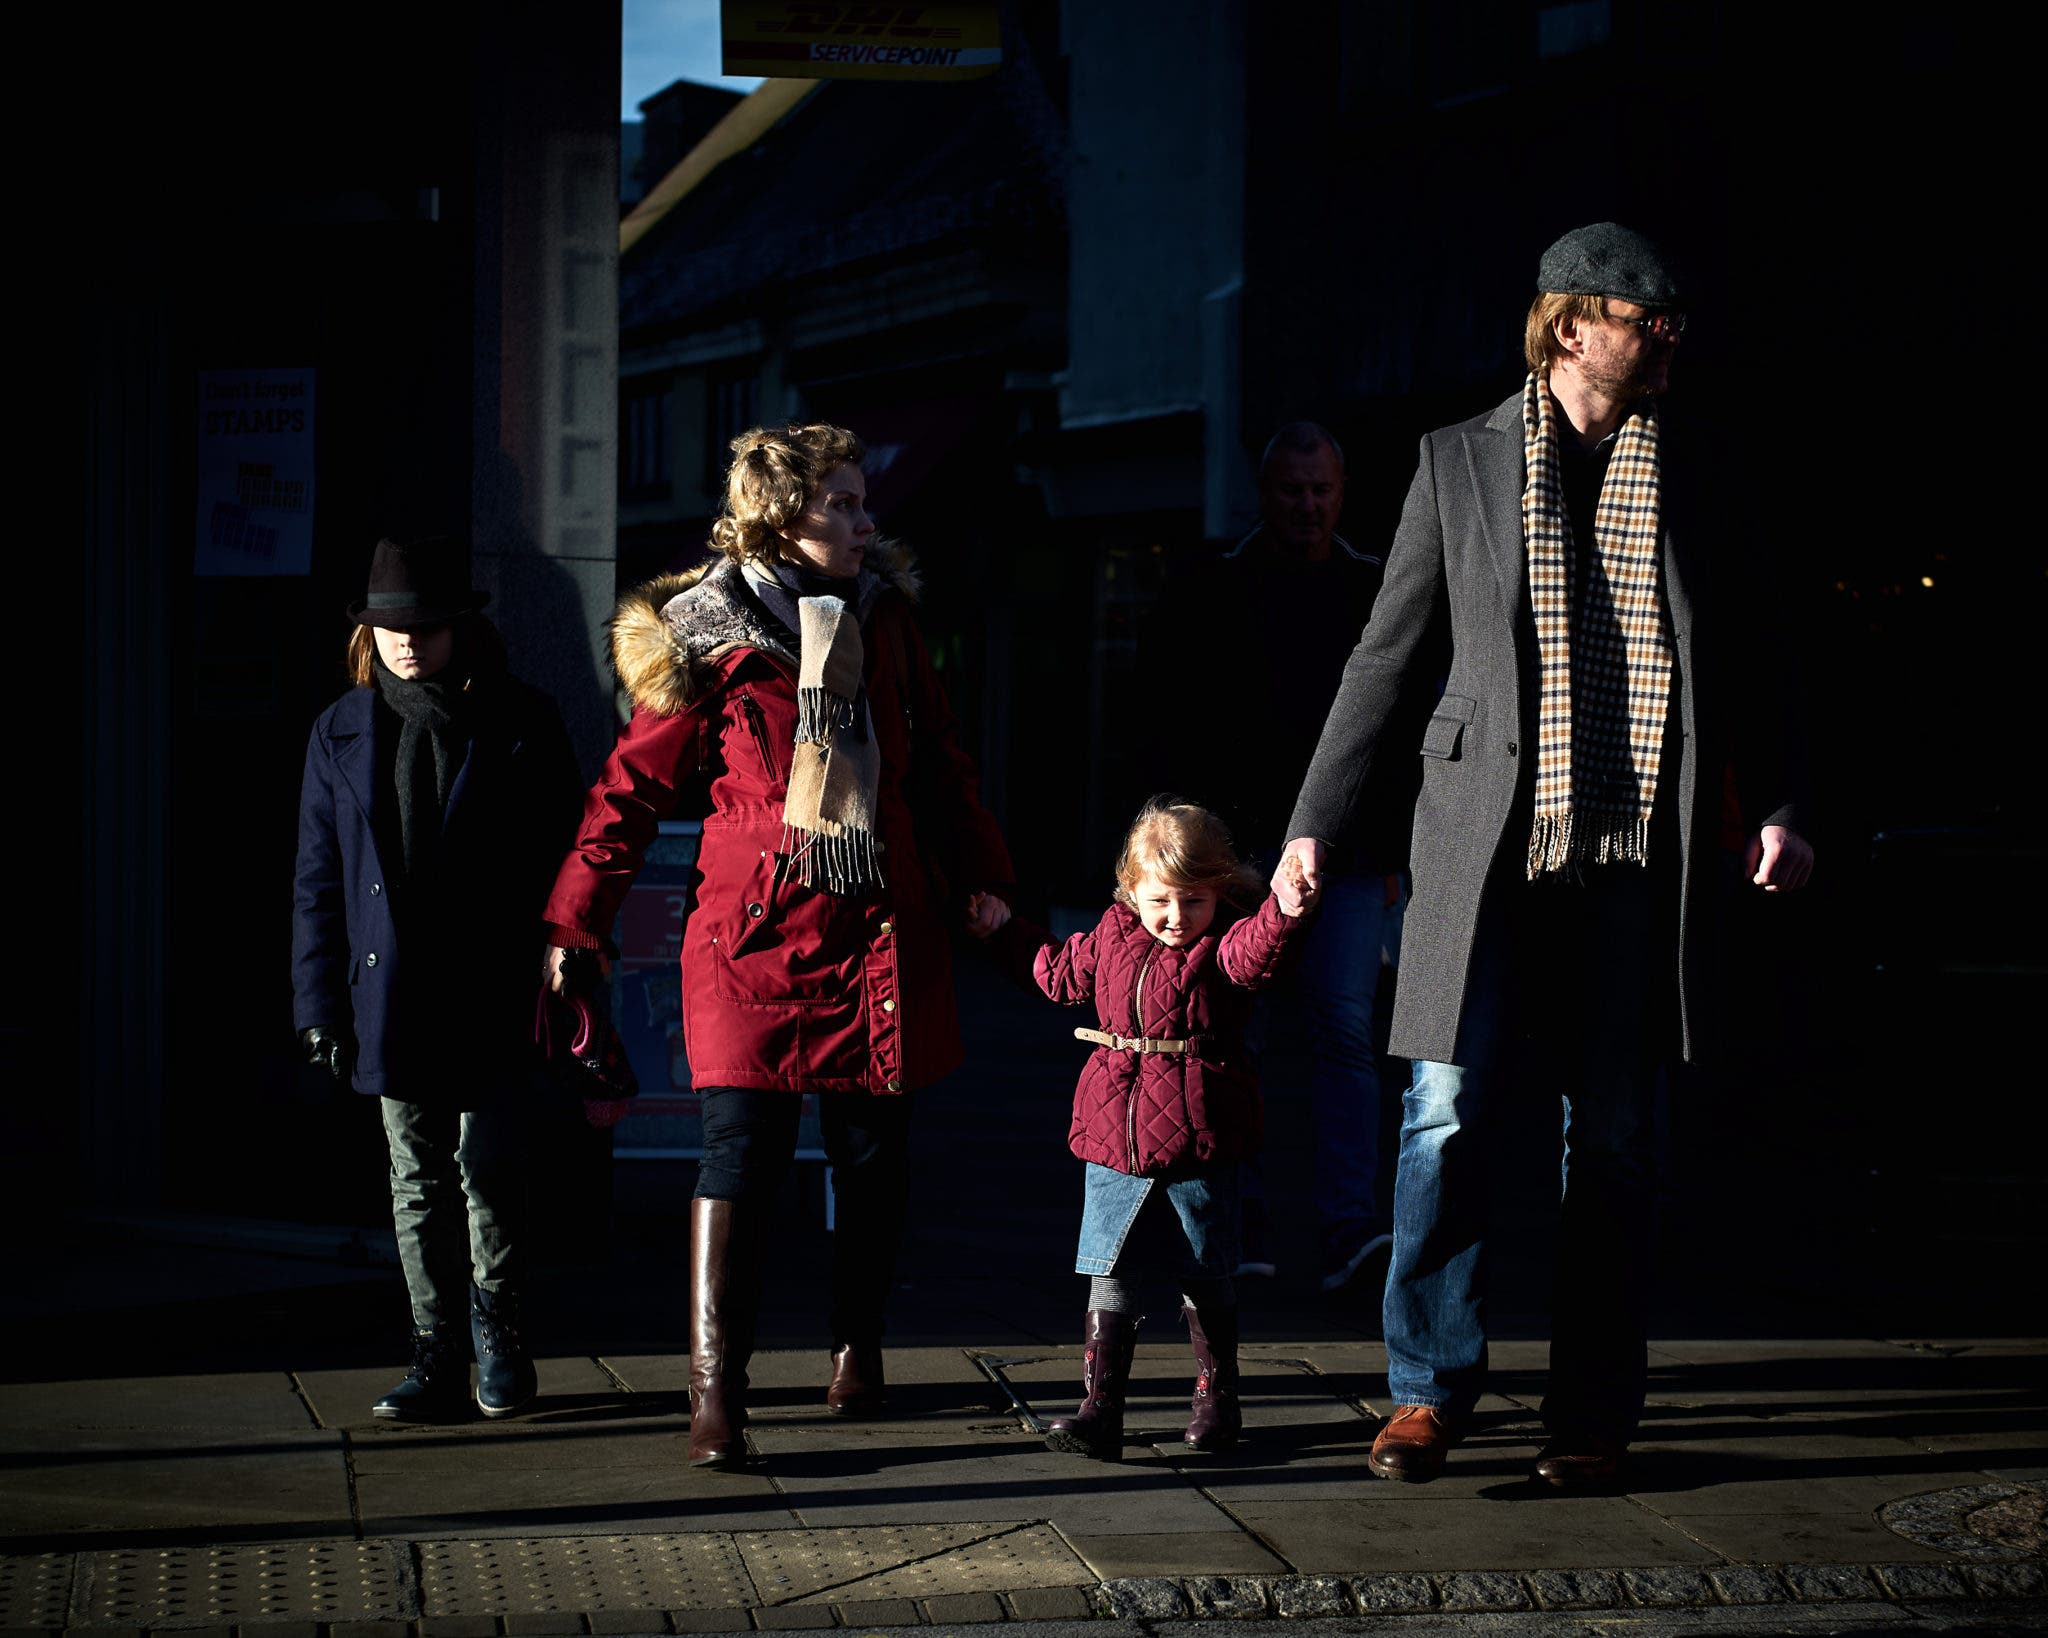 Greg Turner's Candid Street Portraits Use Light in a Gorgeous Way